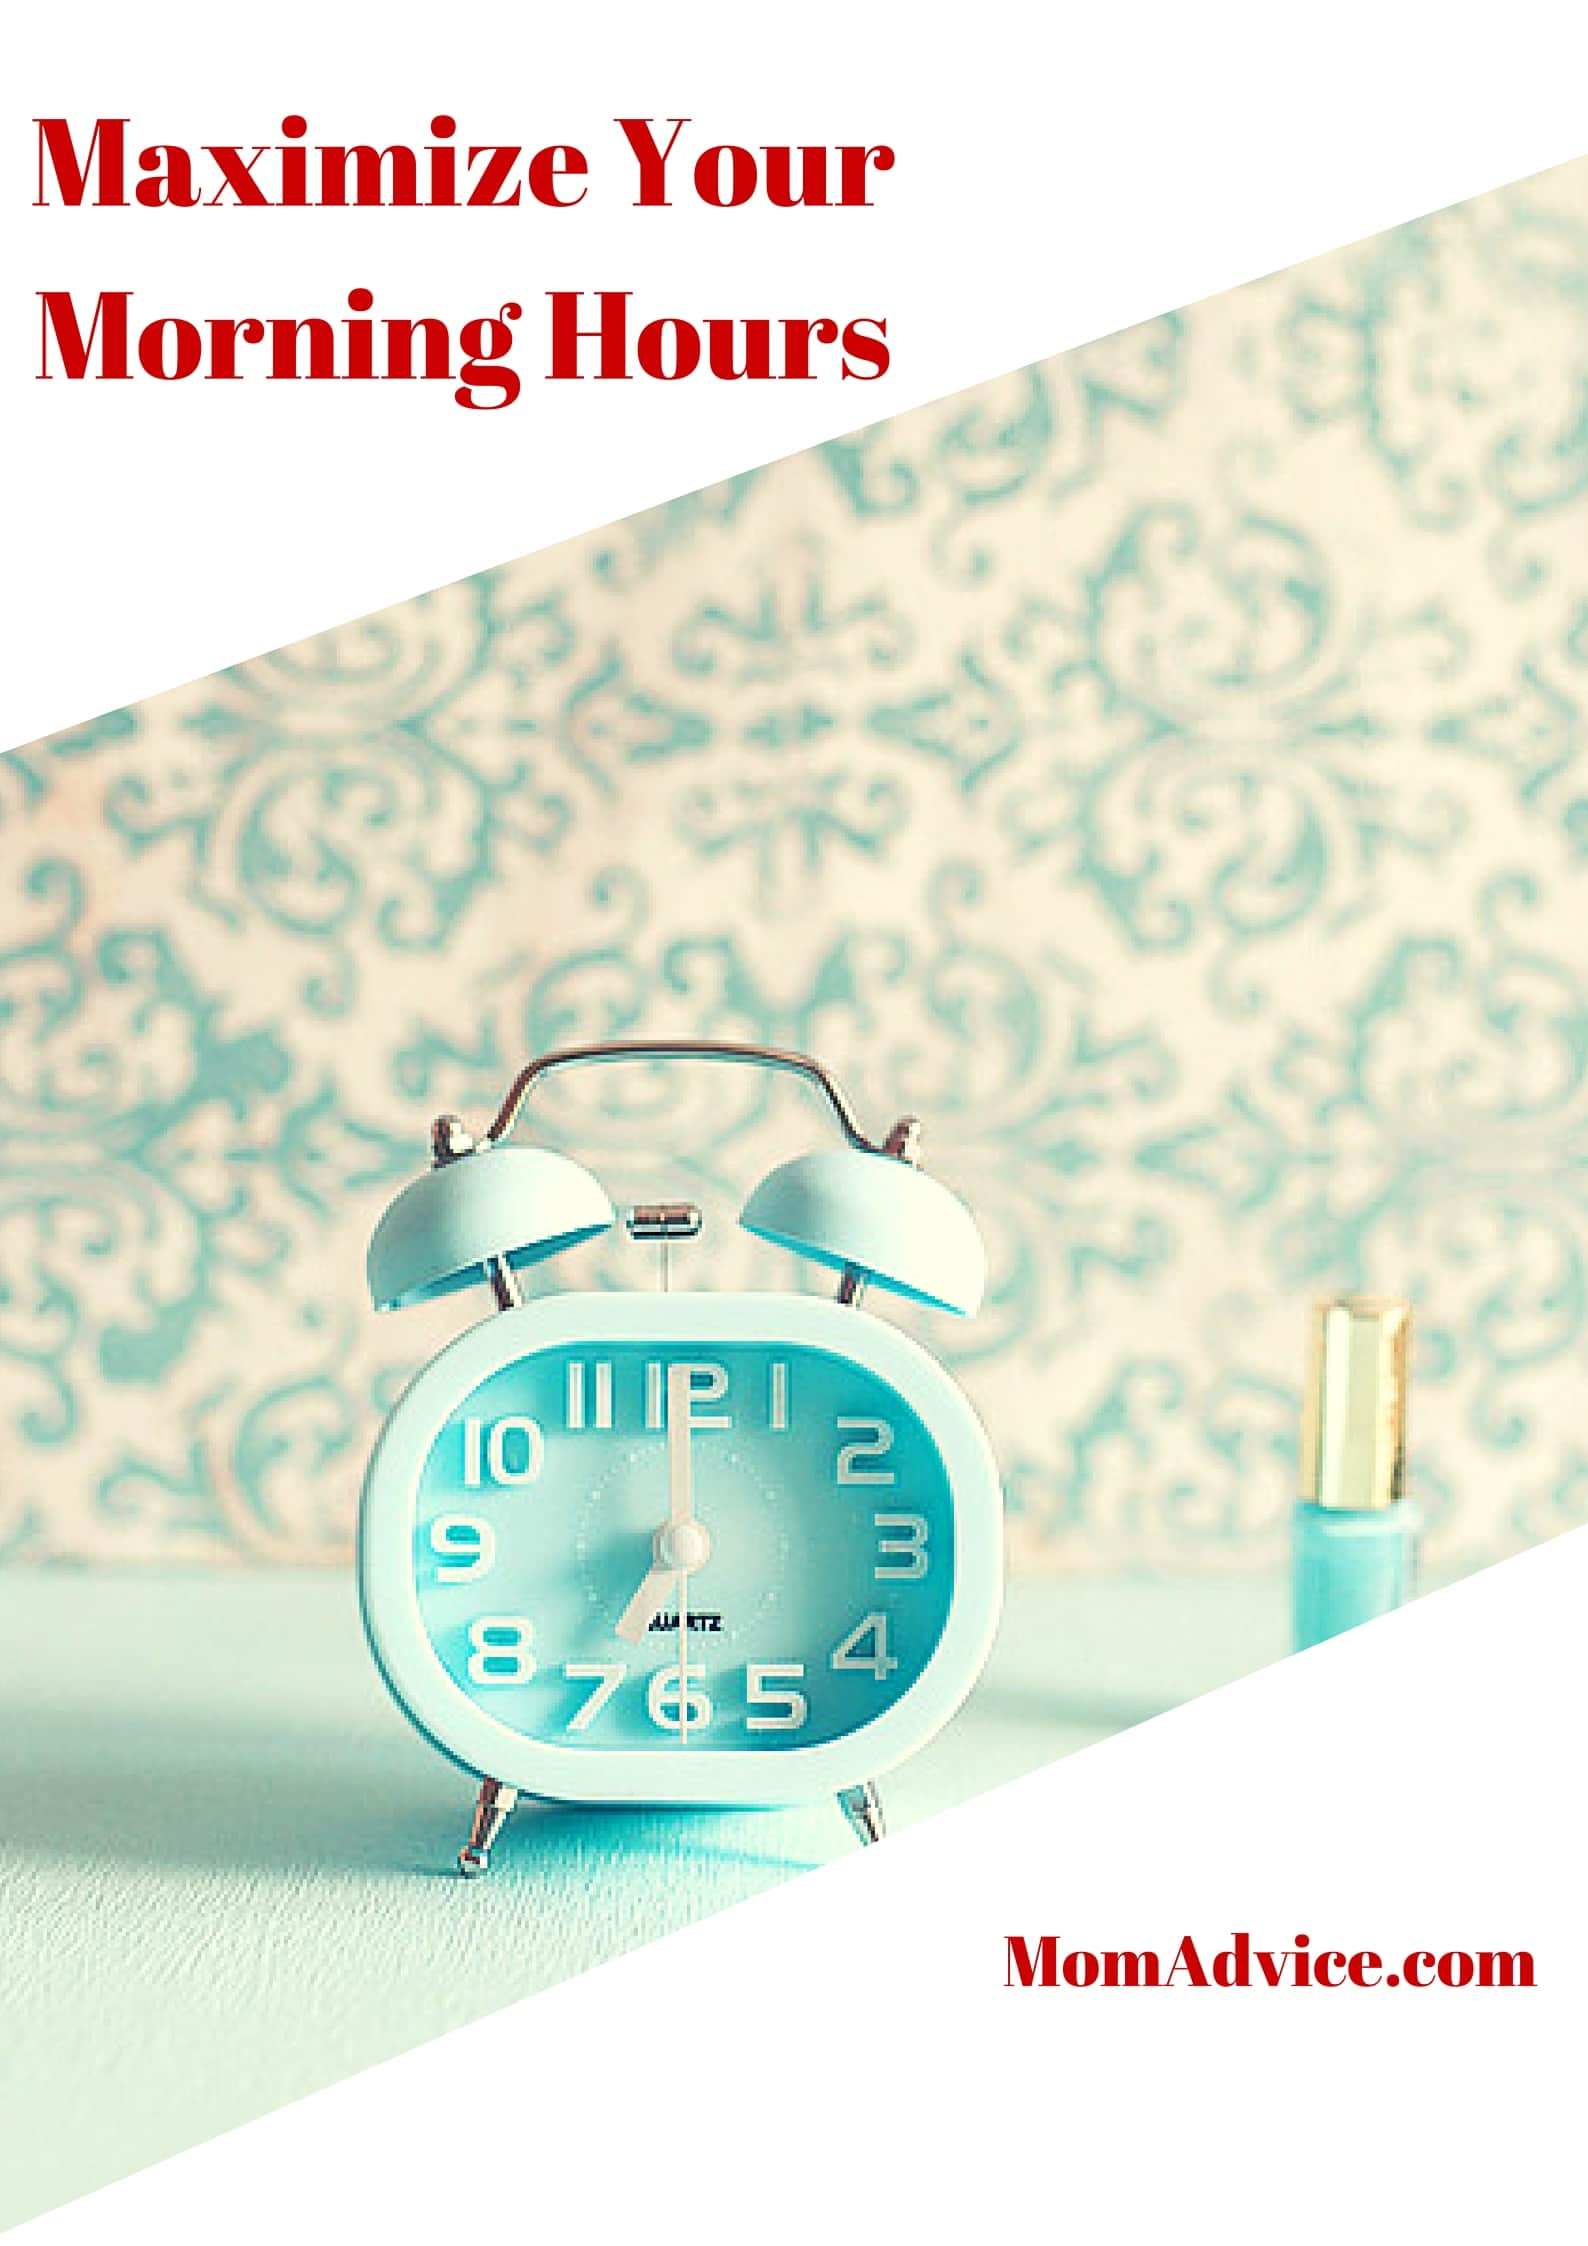 Maximize Your Morning Hours from MomAdvice.com